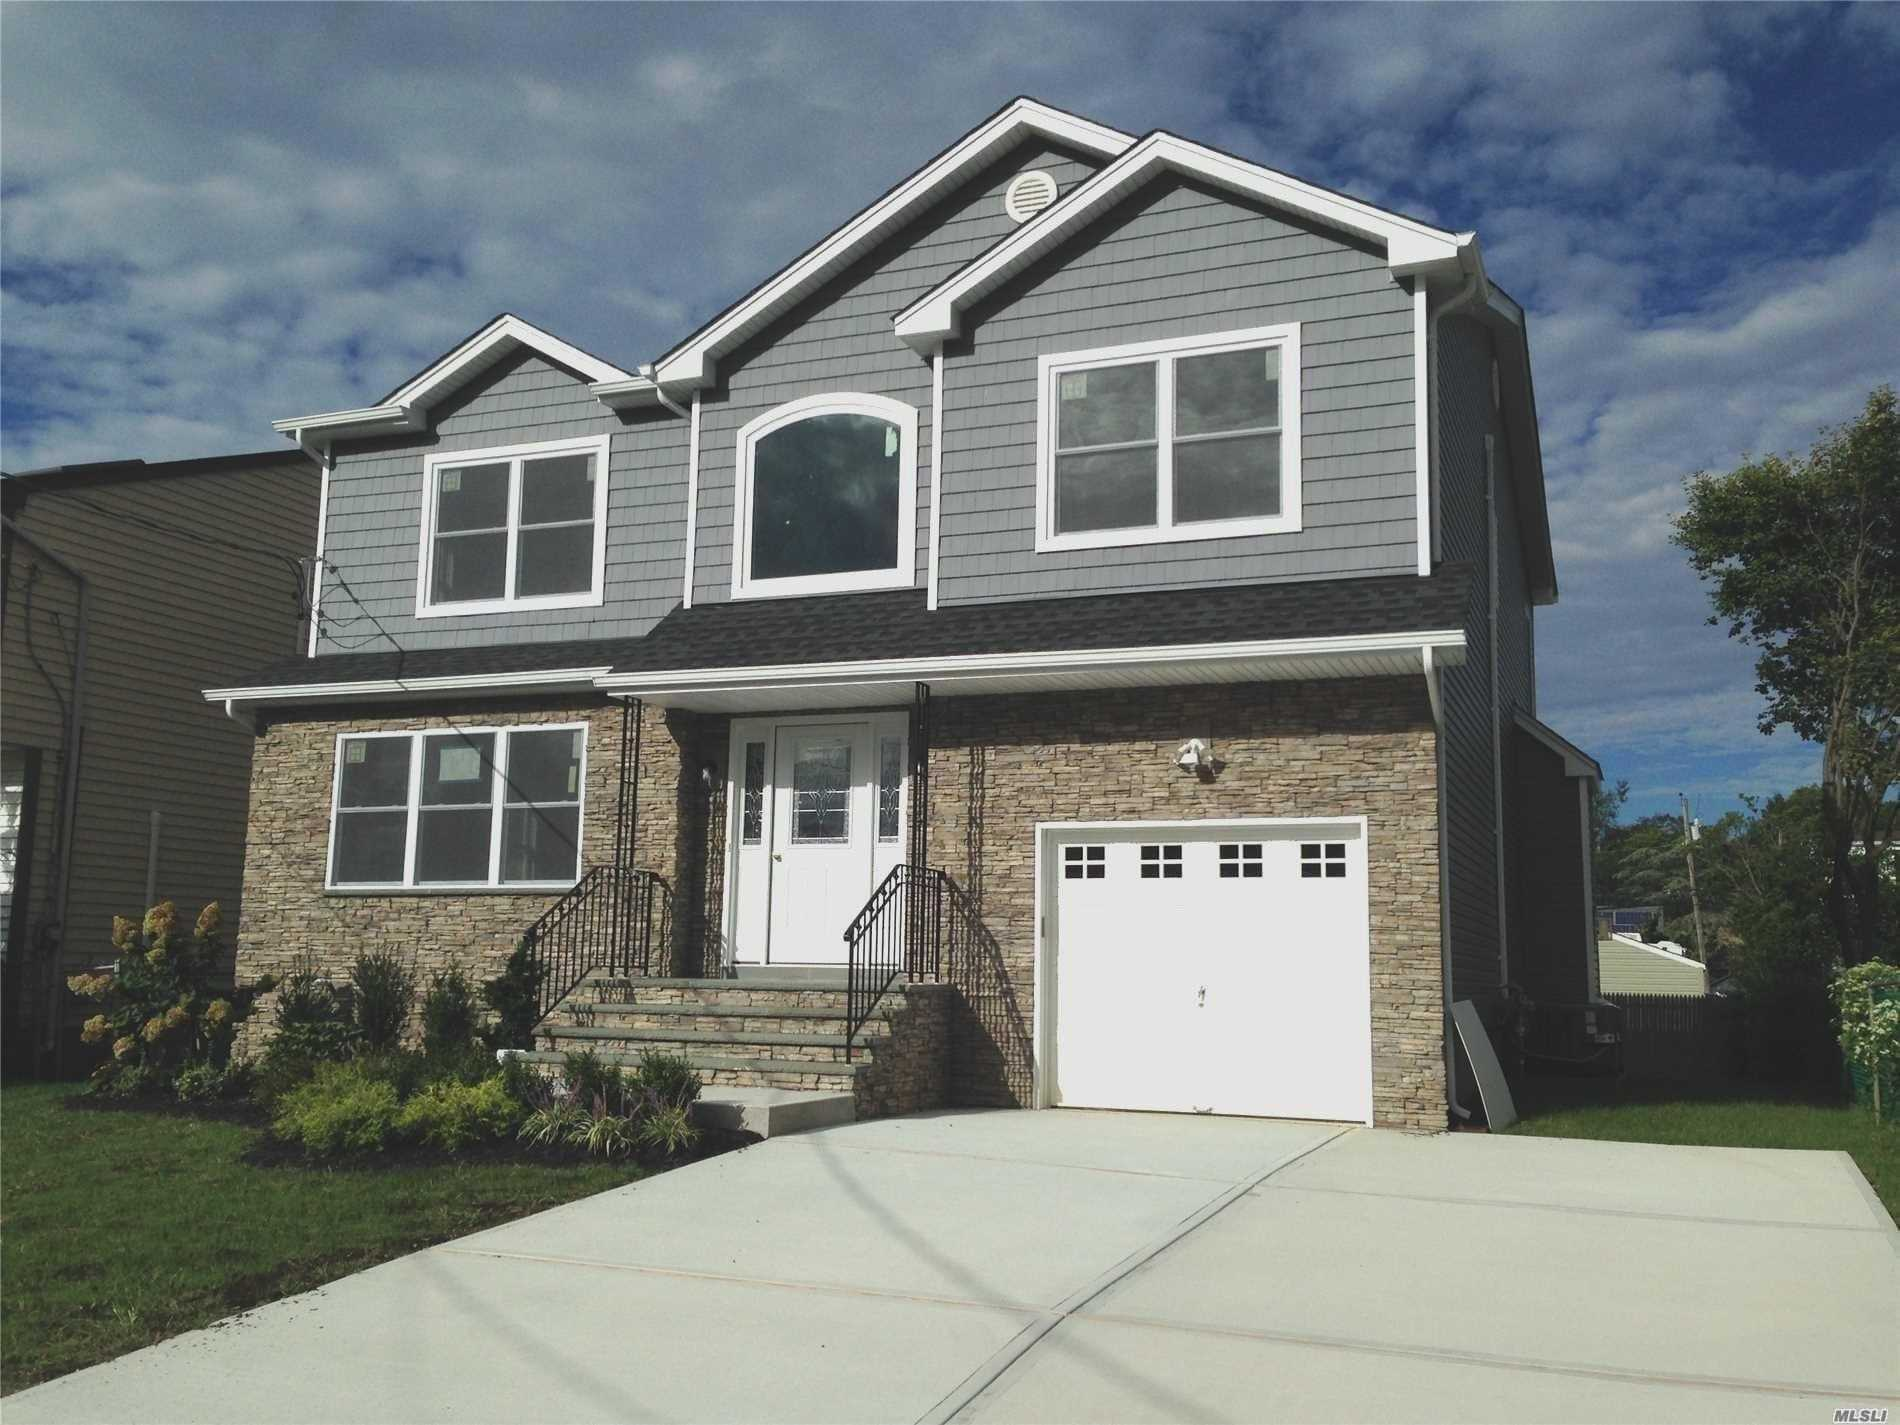 Impeccable Brand New Construction, Center Hall Colonial, 4Br, 2.5Ba, Designer Kitchen, Dbl Oven, S/S App, Quartz Counter W/Island & Microwave, Master Suite, W/Lg Shower & Jcuzzi Tub, 2 Wic, Gleaming H/W Floors Throughout, Crown Molding, Family Room W/Gas Fplc, Attic, Auto Garage Door, Alarm, Close To All, Li Rr. Quiet Block......